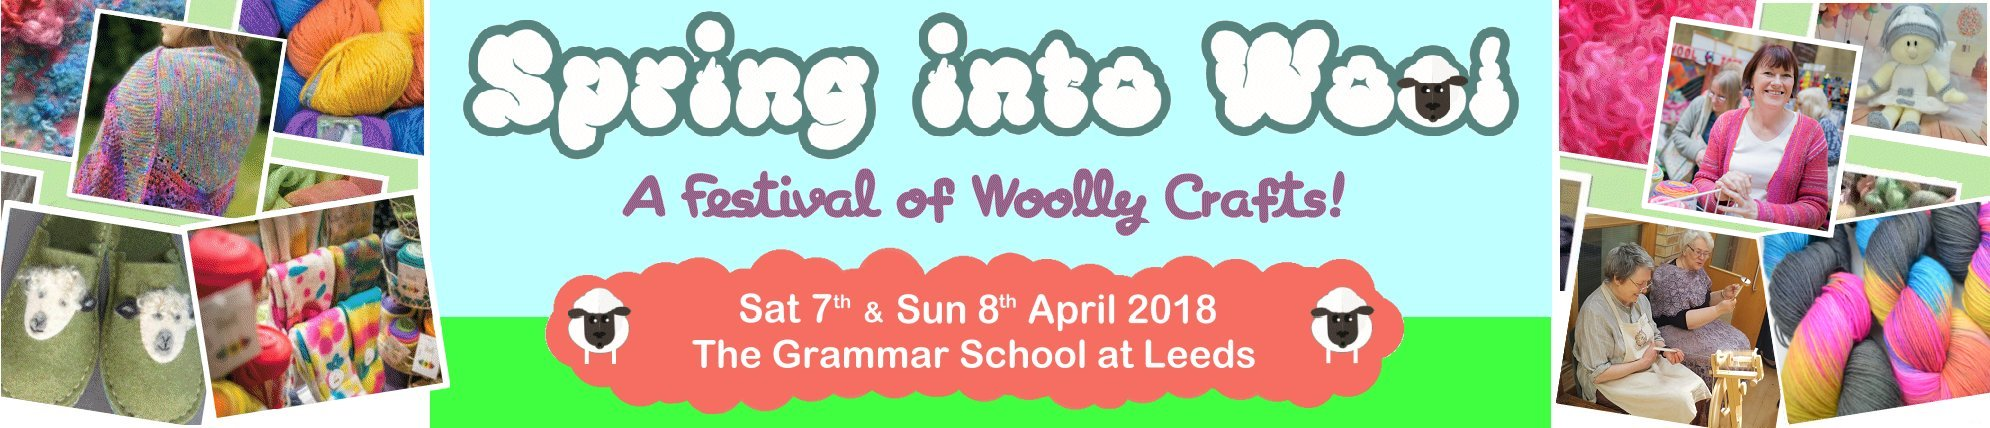 DT Craft and Design are taking a stall at spring into wool at the grammar school at leeds on 7th and 8th april 2018